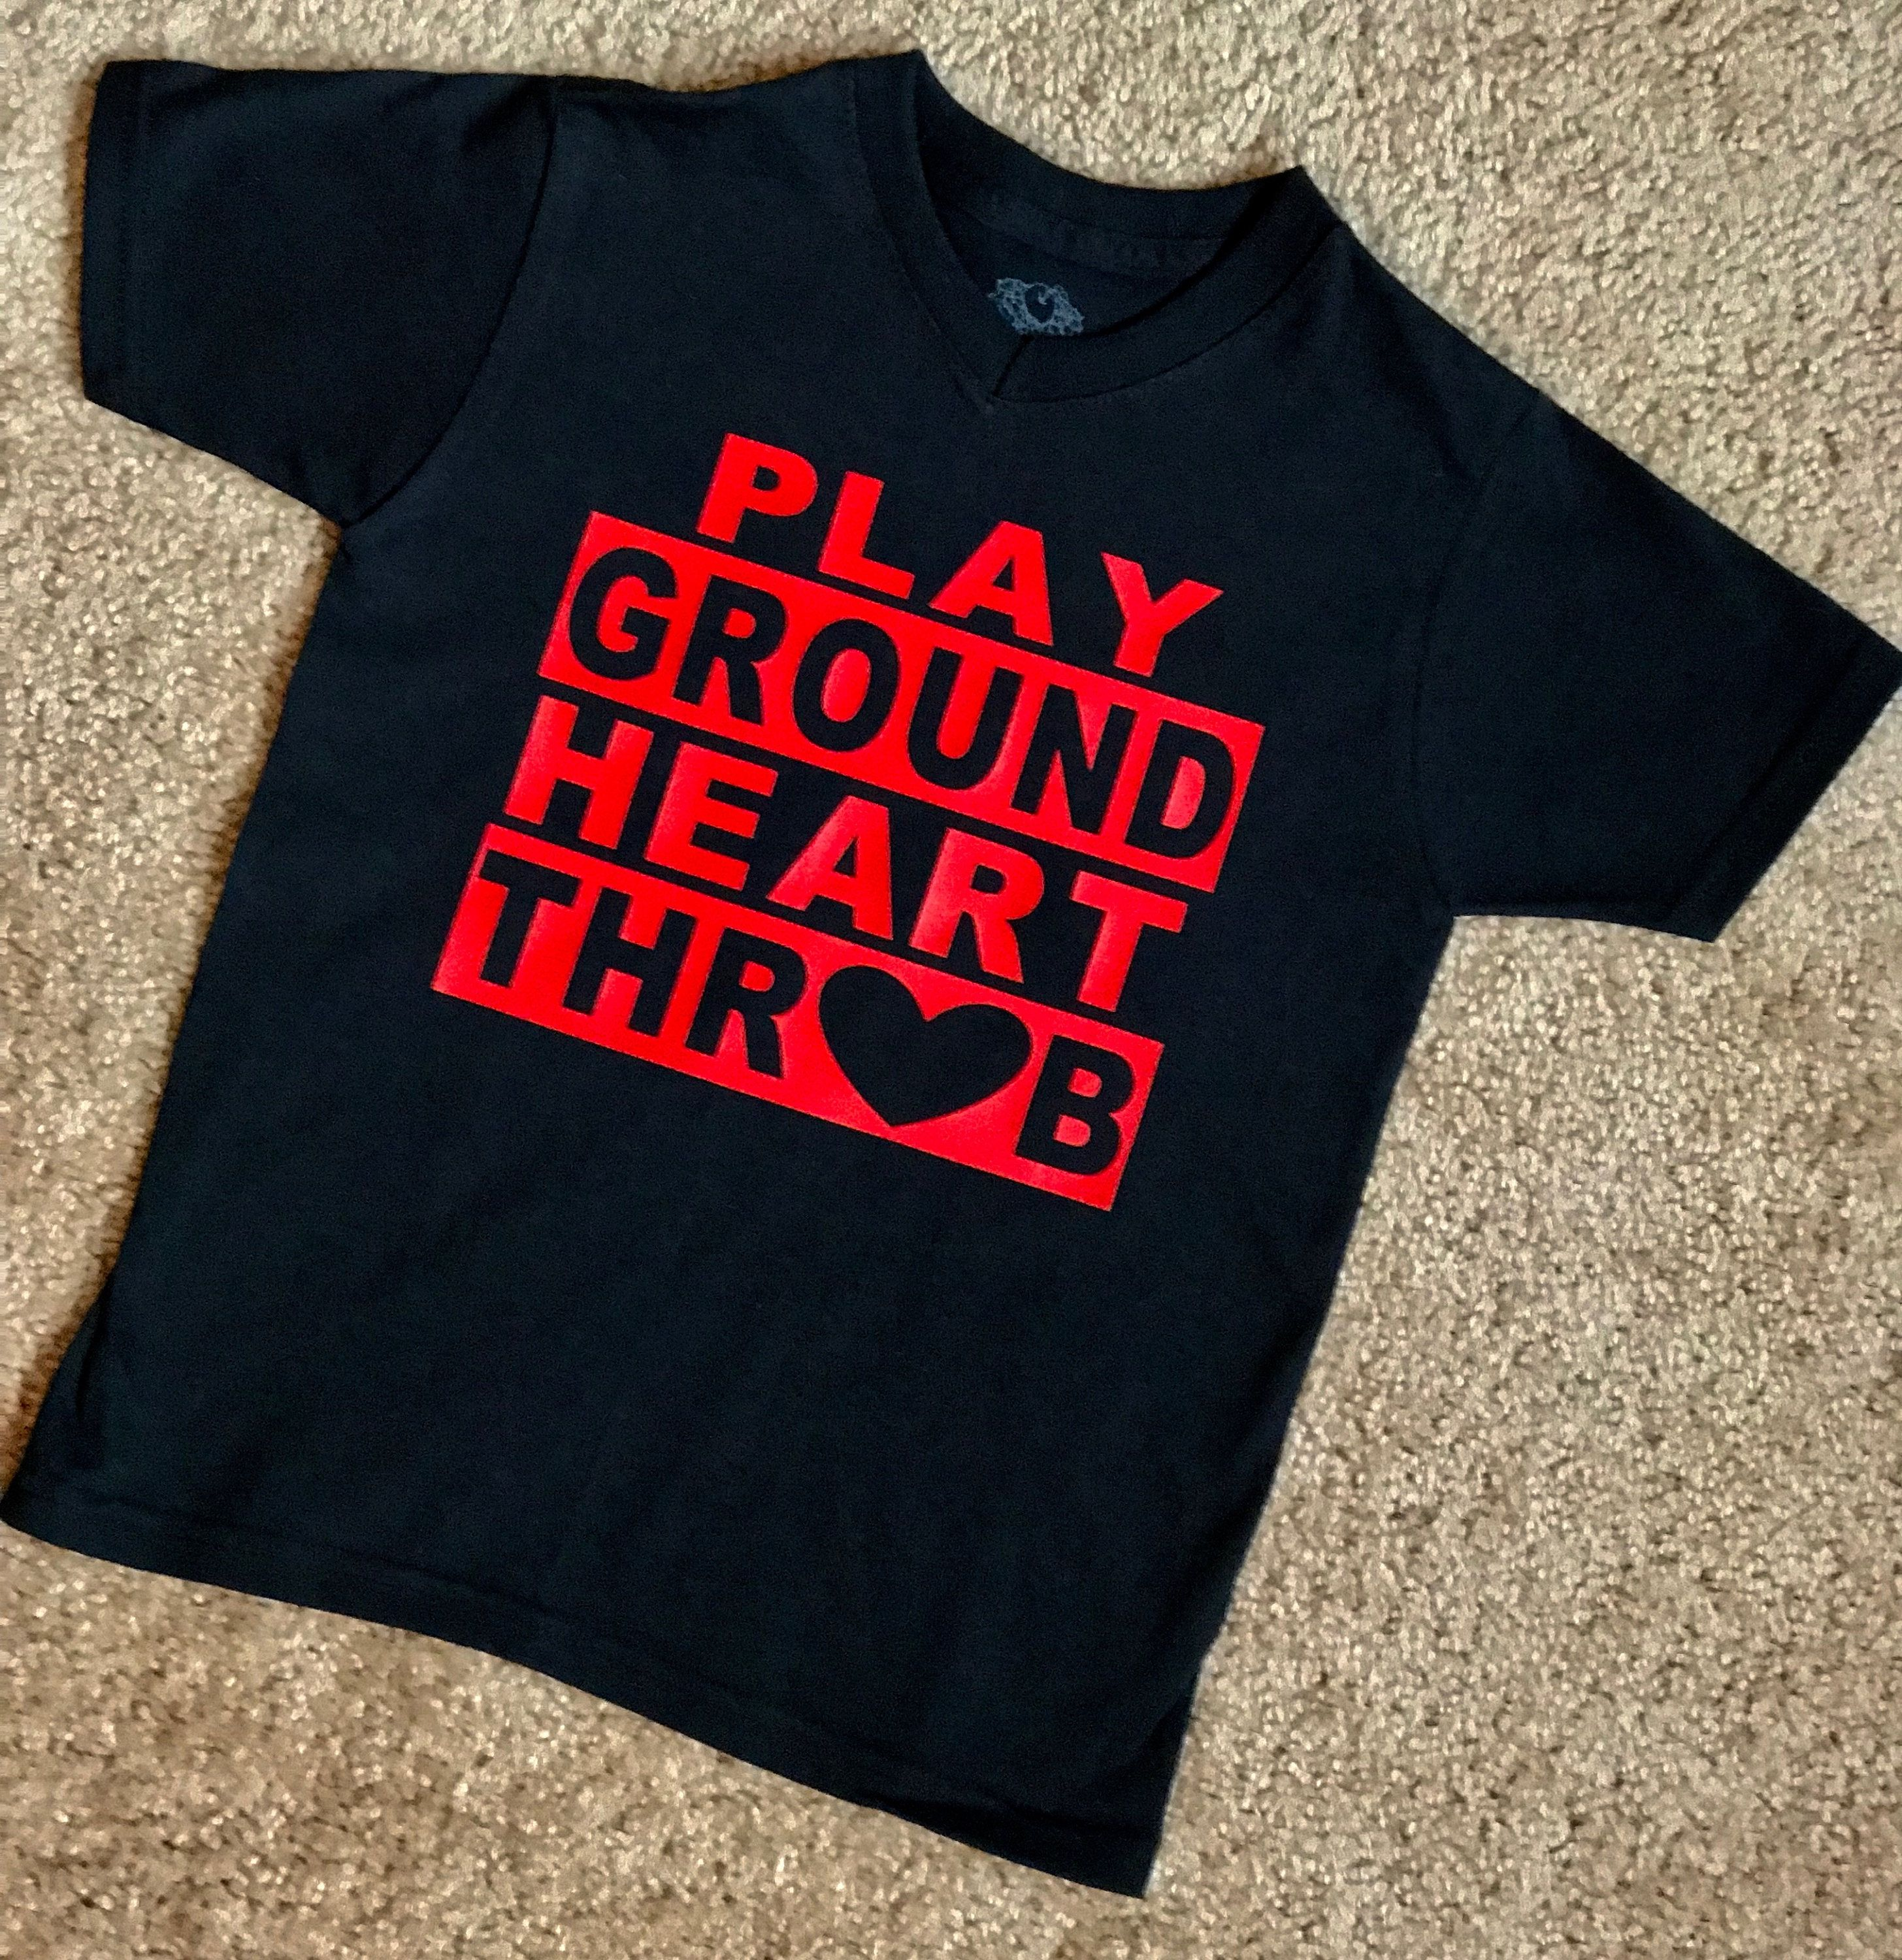 Play Ground Heart Throb Boys Valentine S Day Shirt Heart Throb